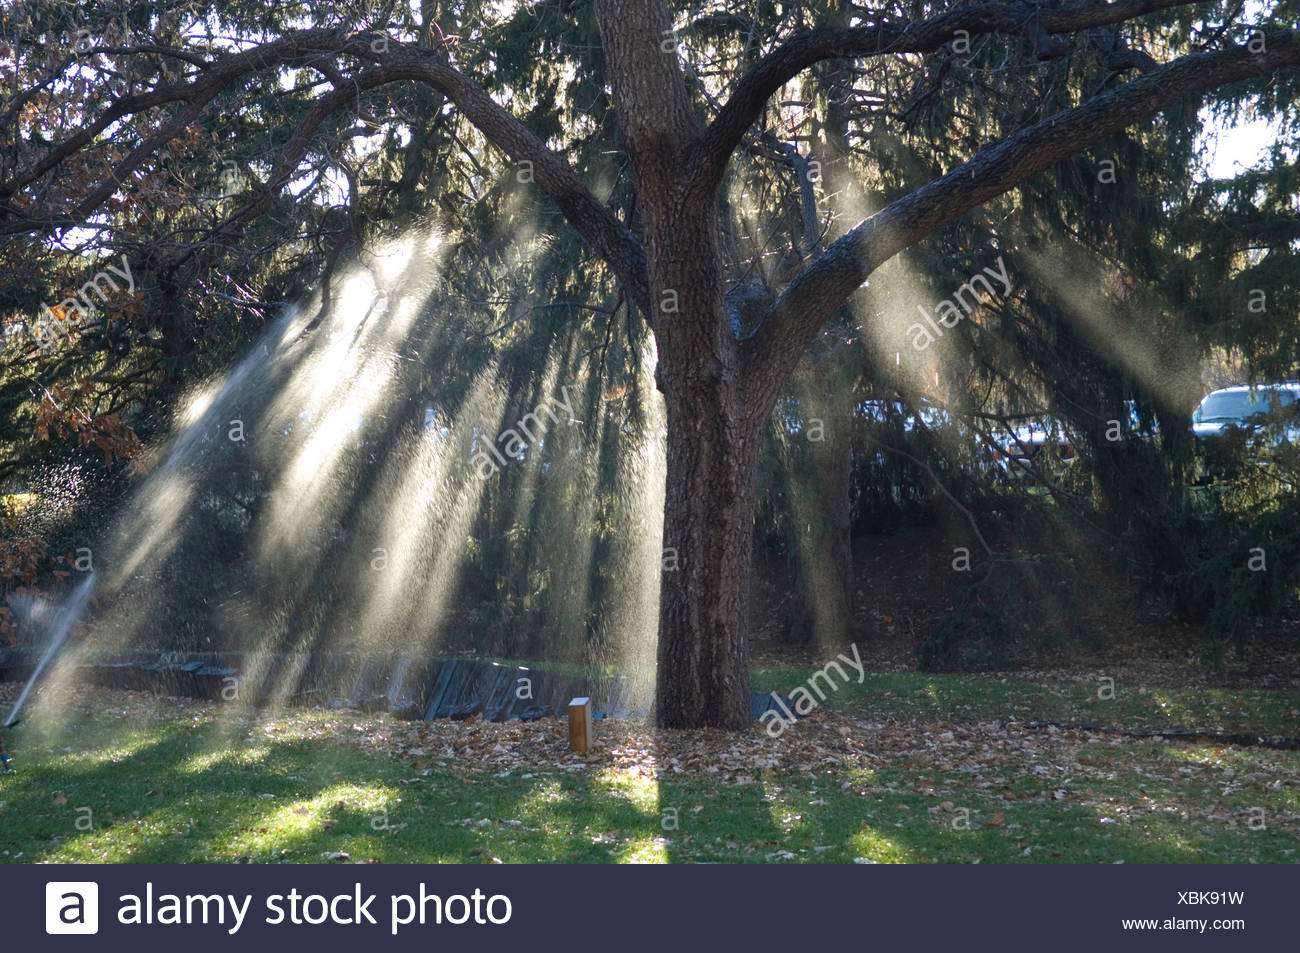 The sun's rays shine through a trees branches at Maxwell Arboretum. - Stock Image